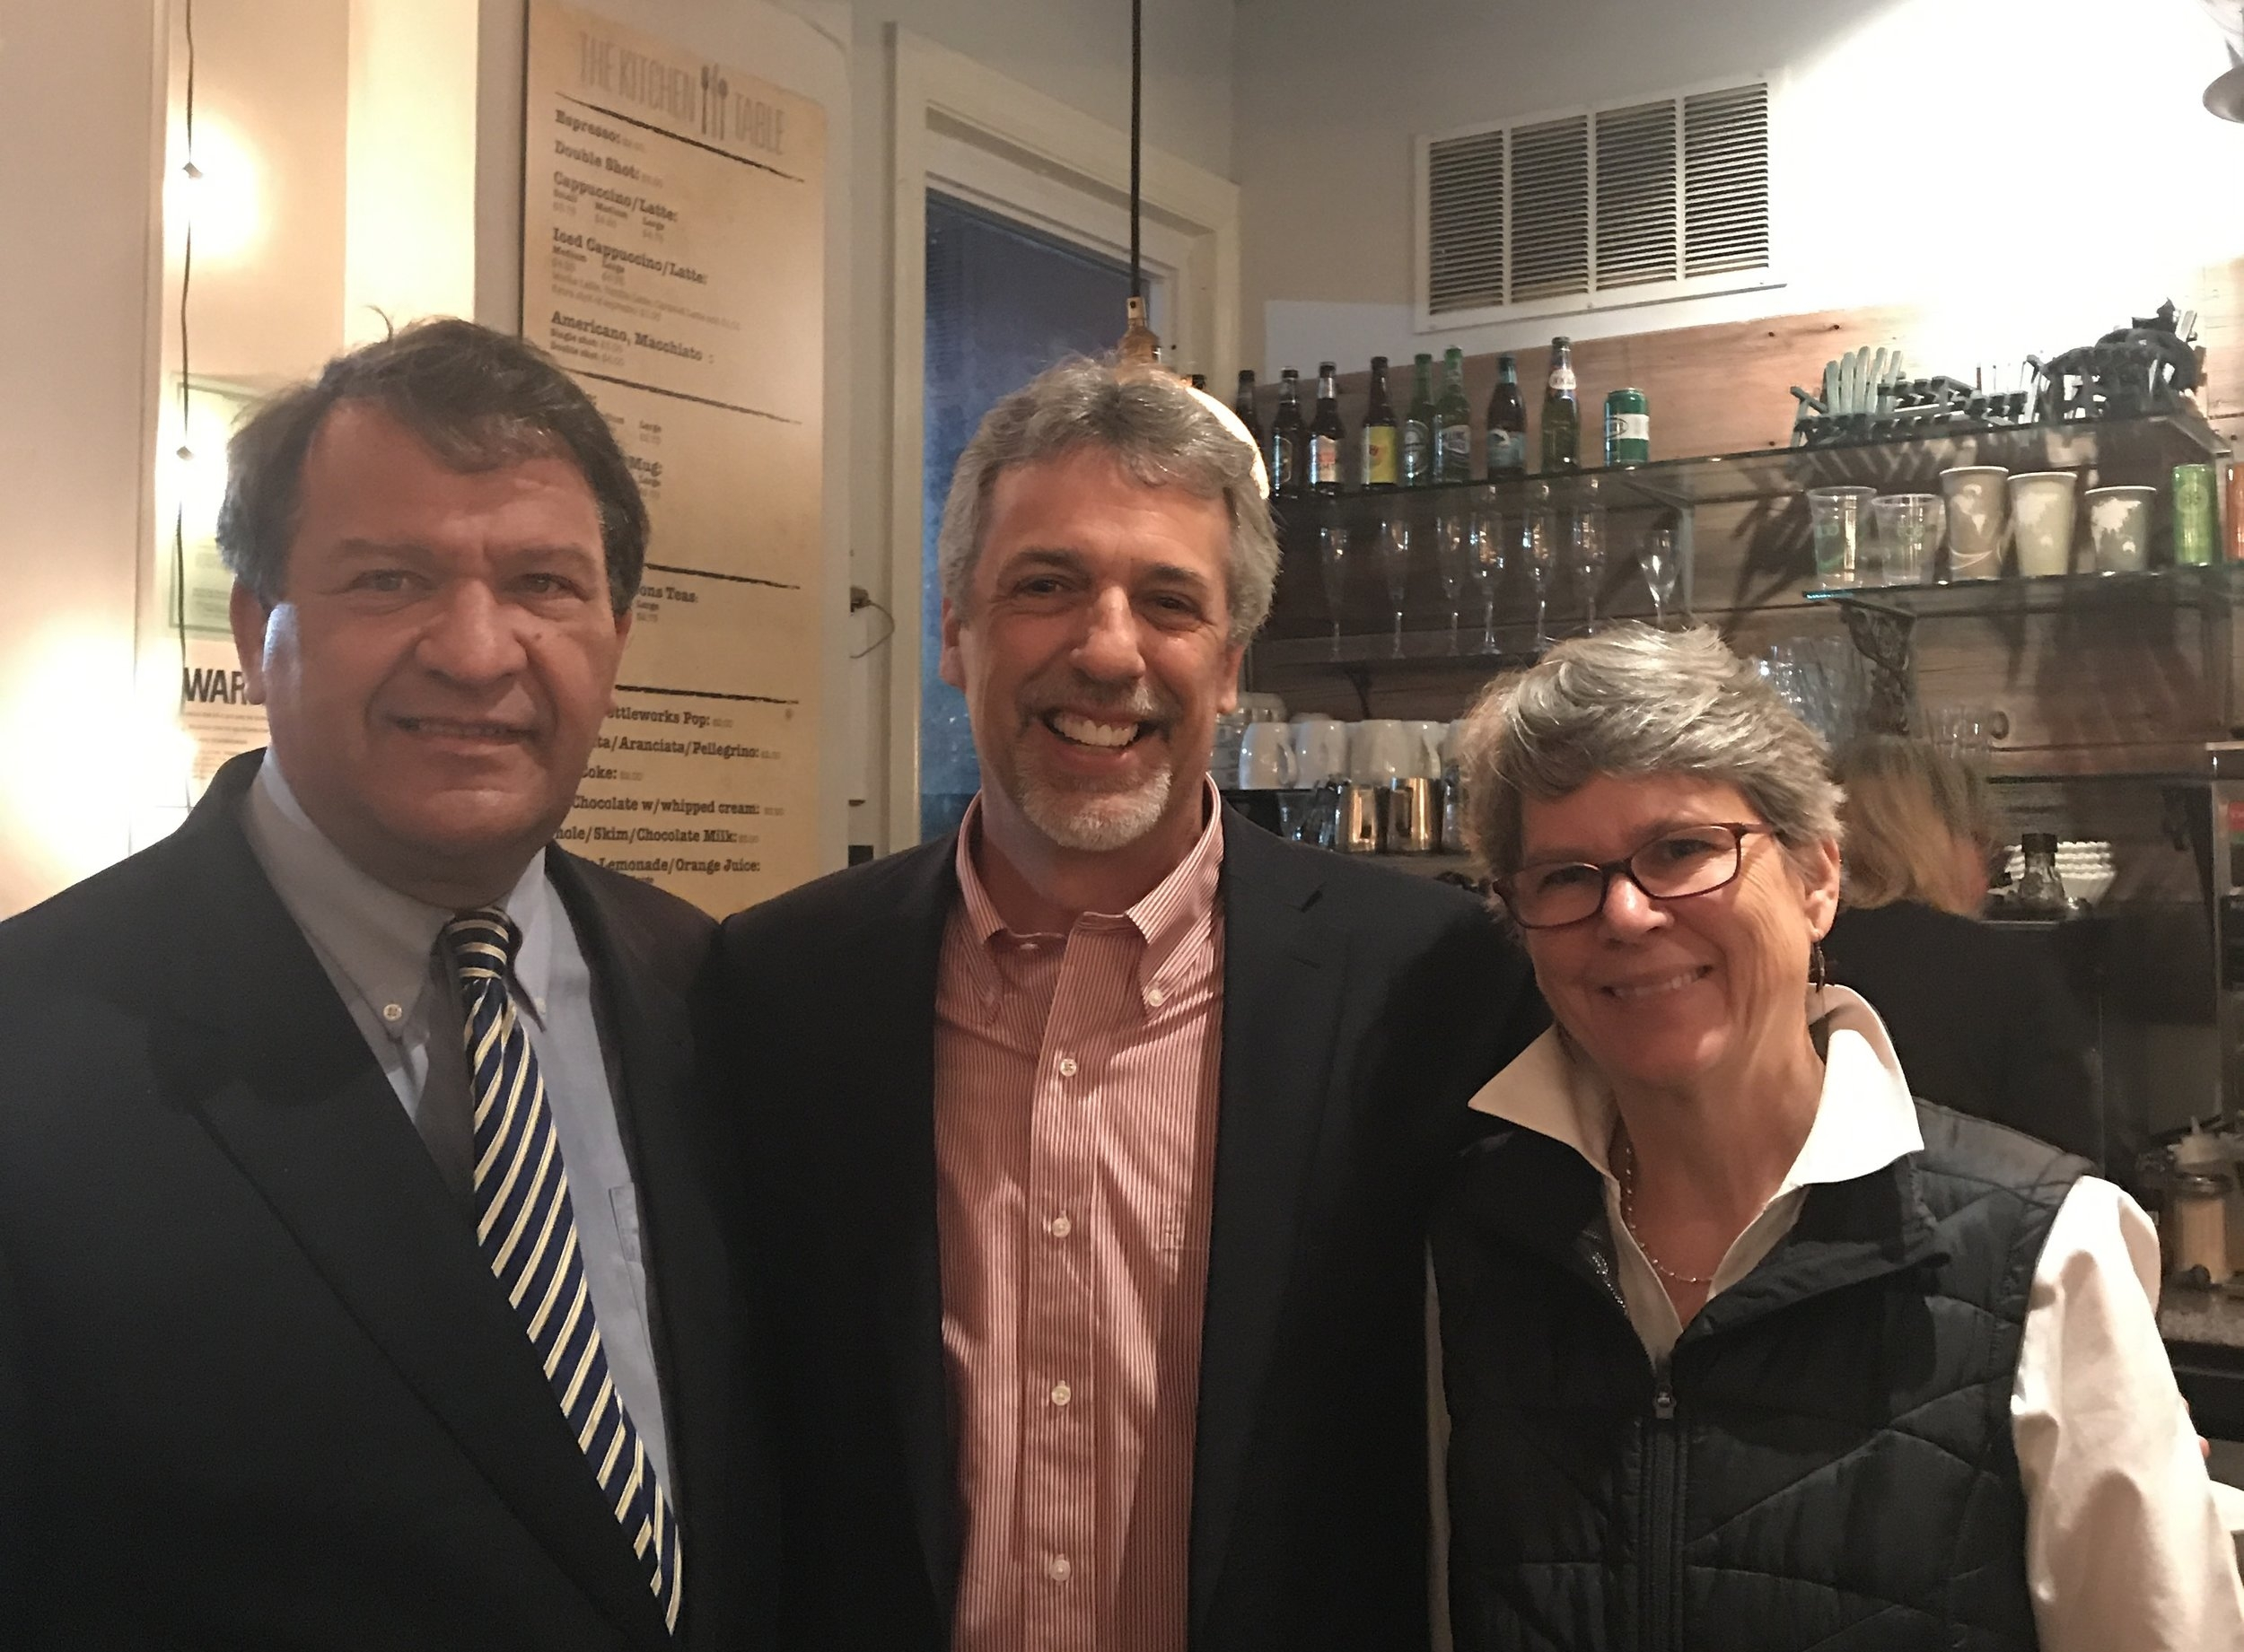 George Latimer (candidate for Westchester County Executive), Kevin Hansan (candidate for Pound Ridge Town Supervisor), and Kitley Coville (candidate for County Legislator).